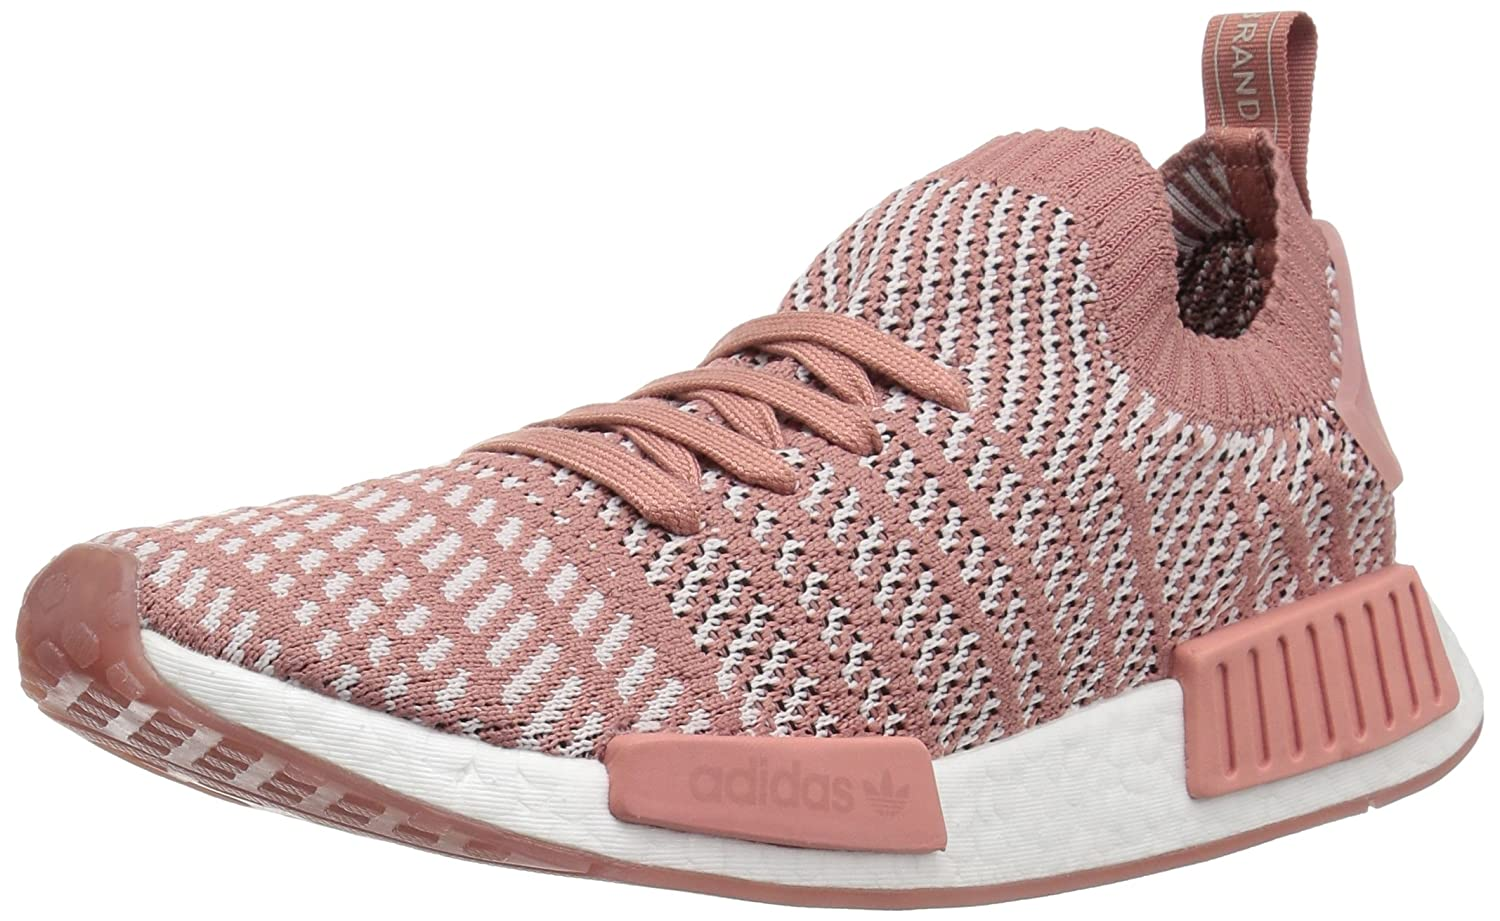 adidas Originals Women's NMD_r1 Stlt Pk B078XLKMNR 9.5 B(M) US|Ash Pink/Orange Indigo/White